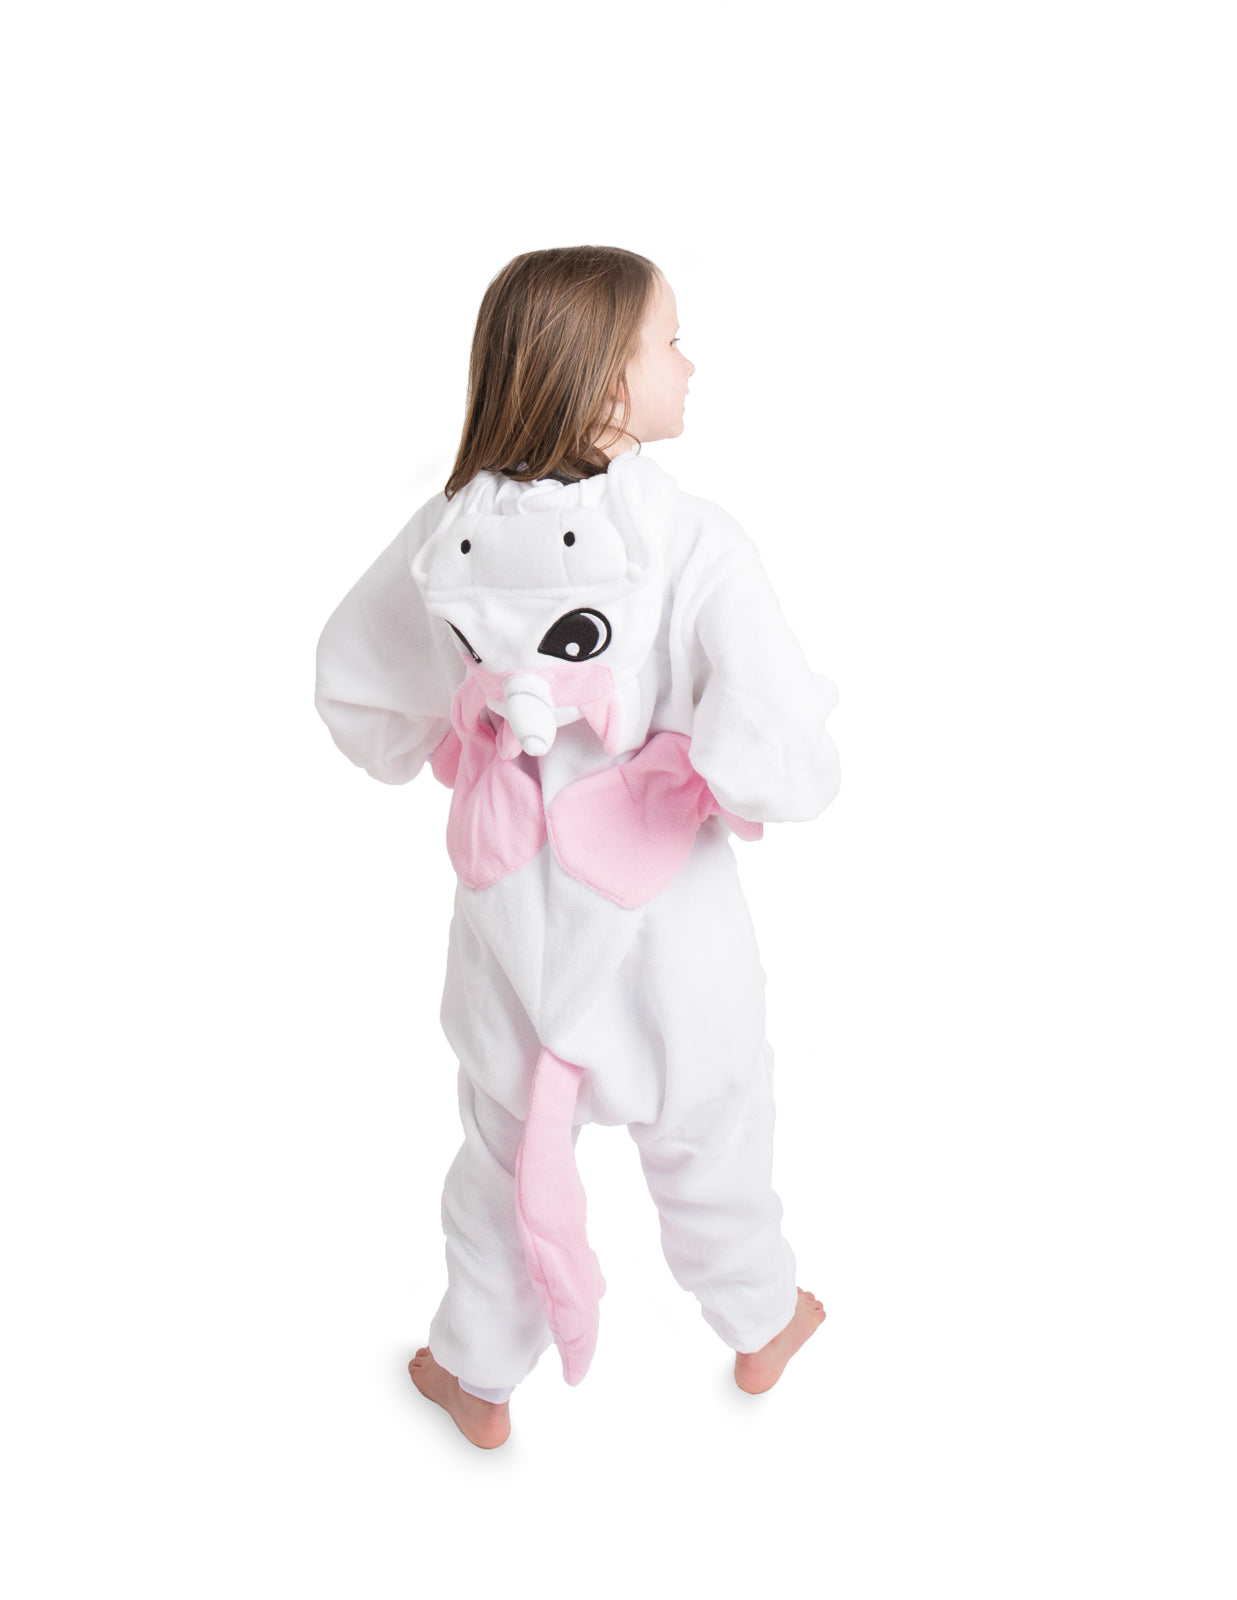 Kids Onesie - Unicorn - Pink - White